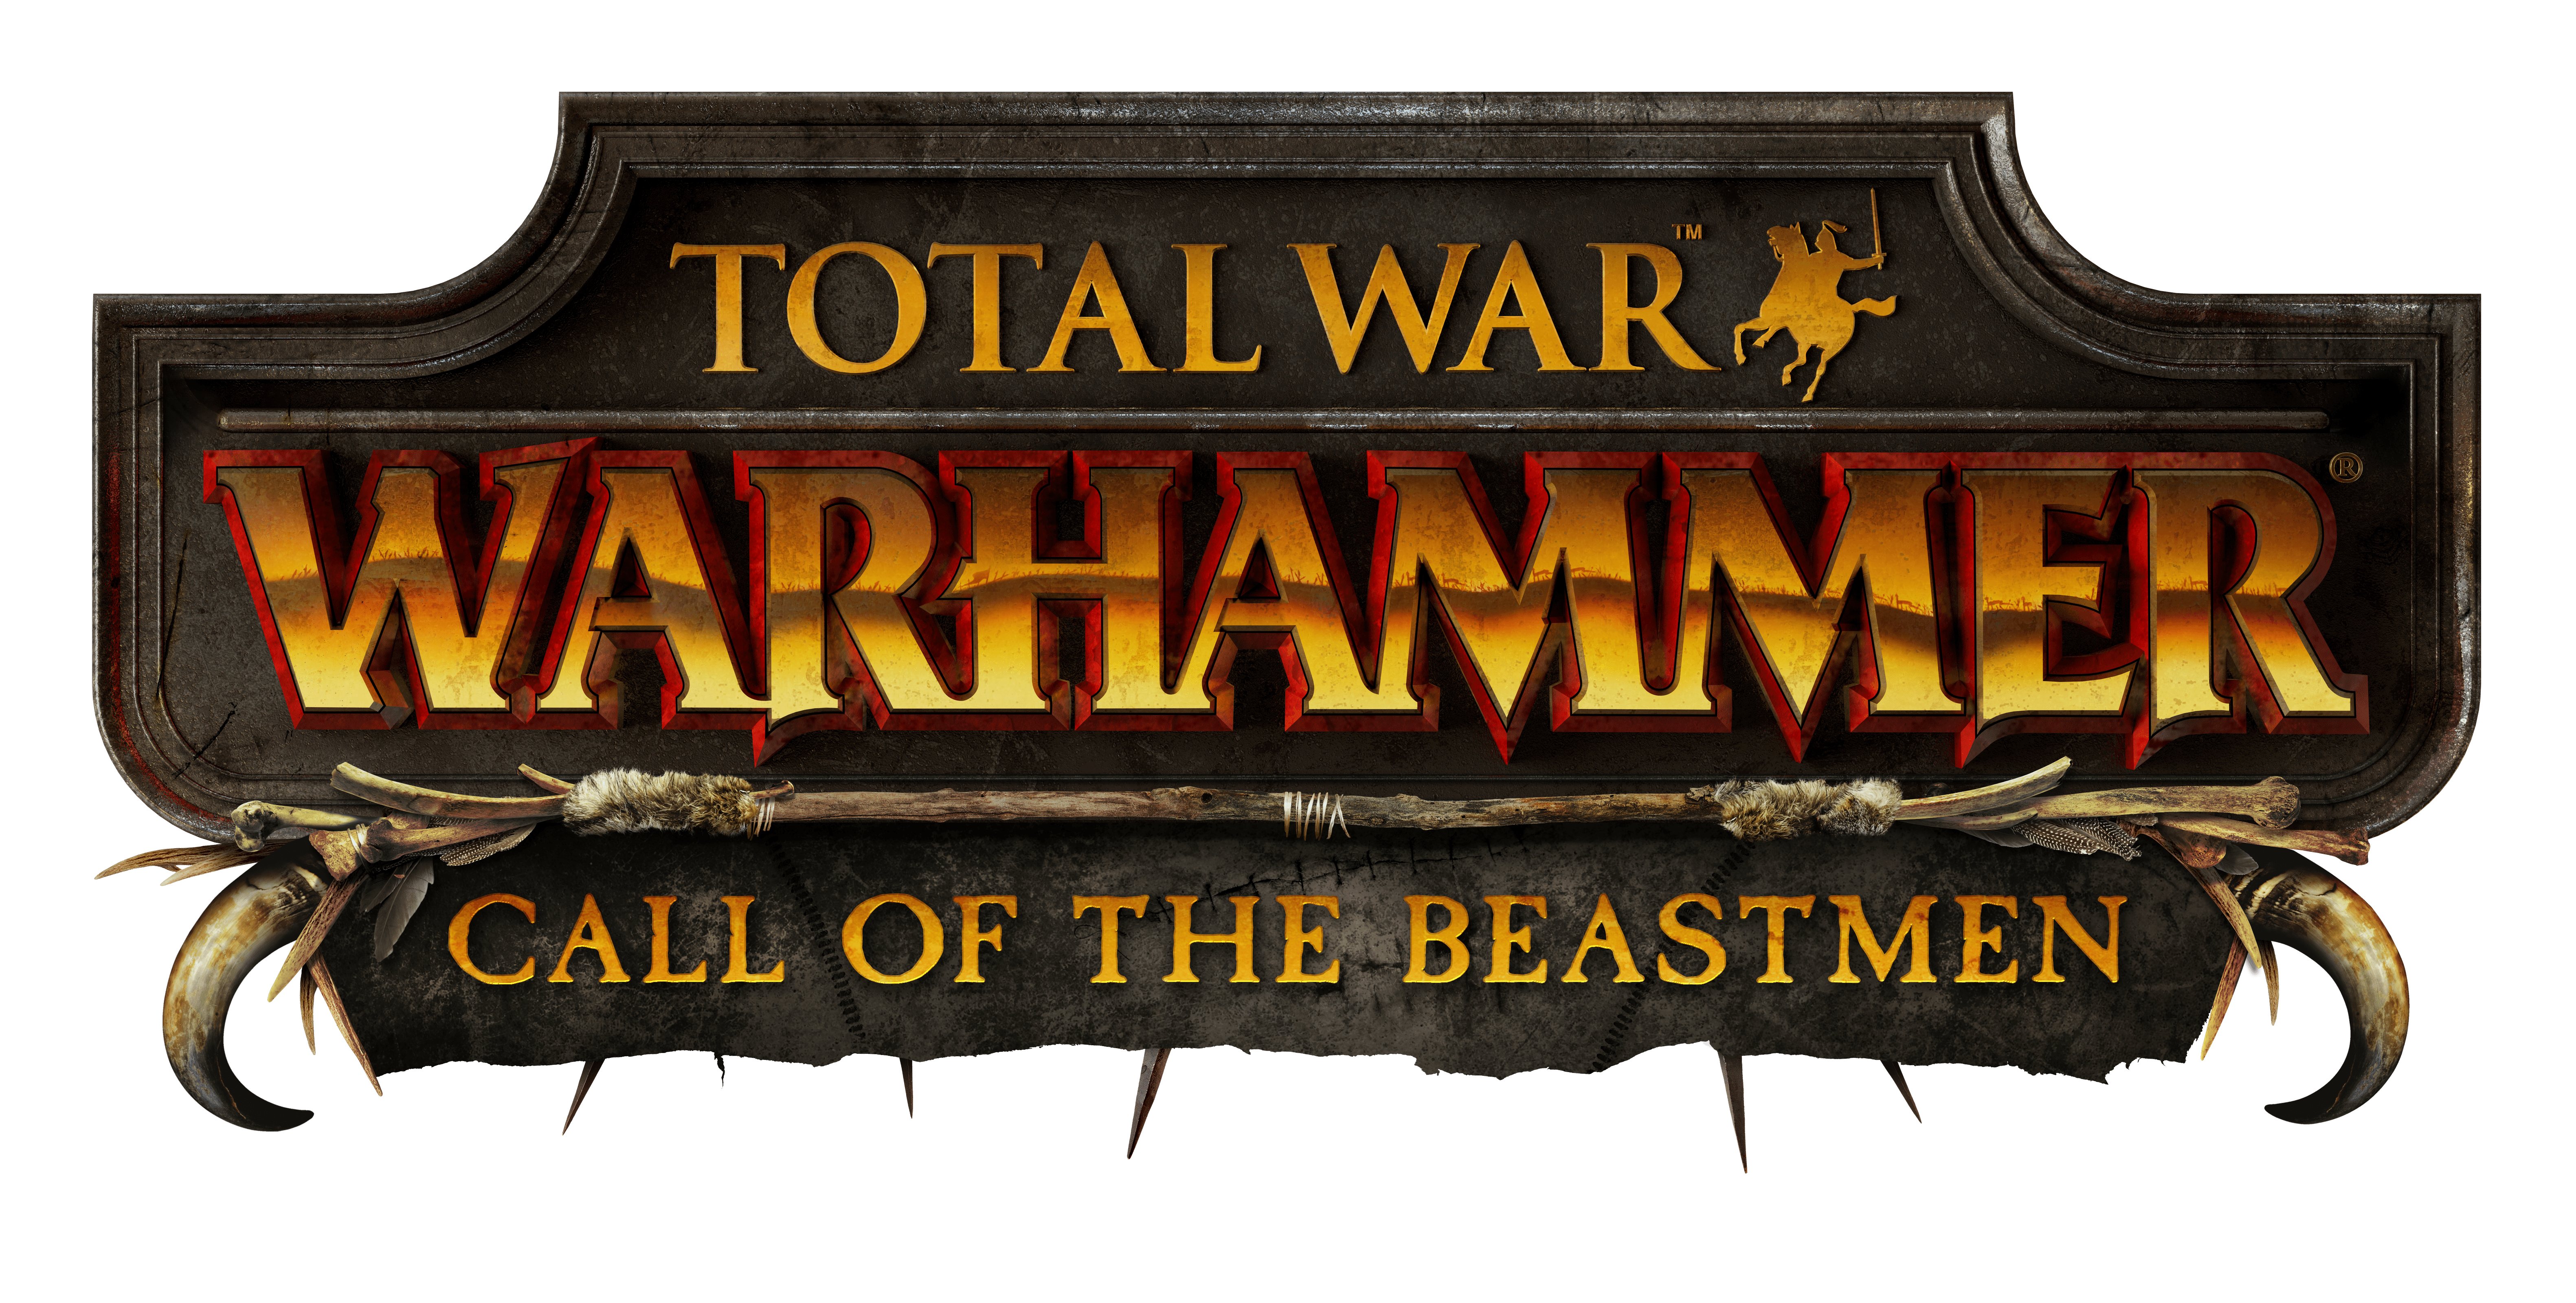 Total War: WARHAMMER Call of the Beastmen Campaign Pack Plus Free Content Now Available